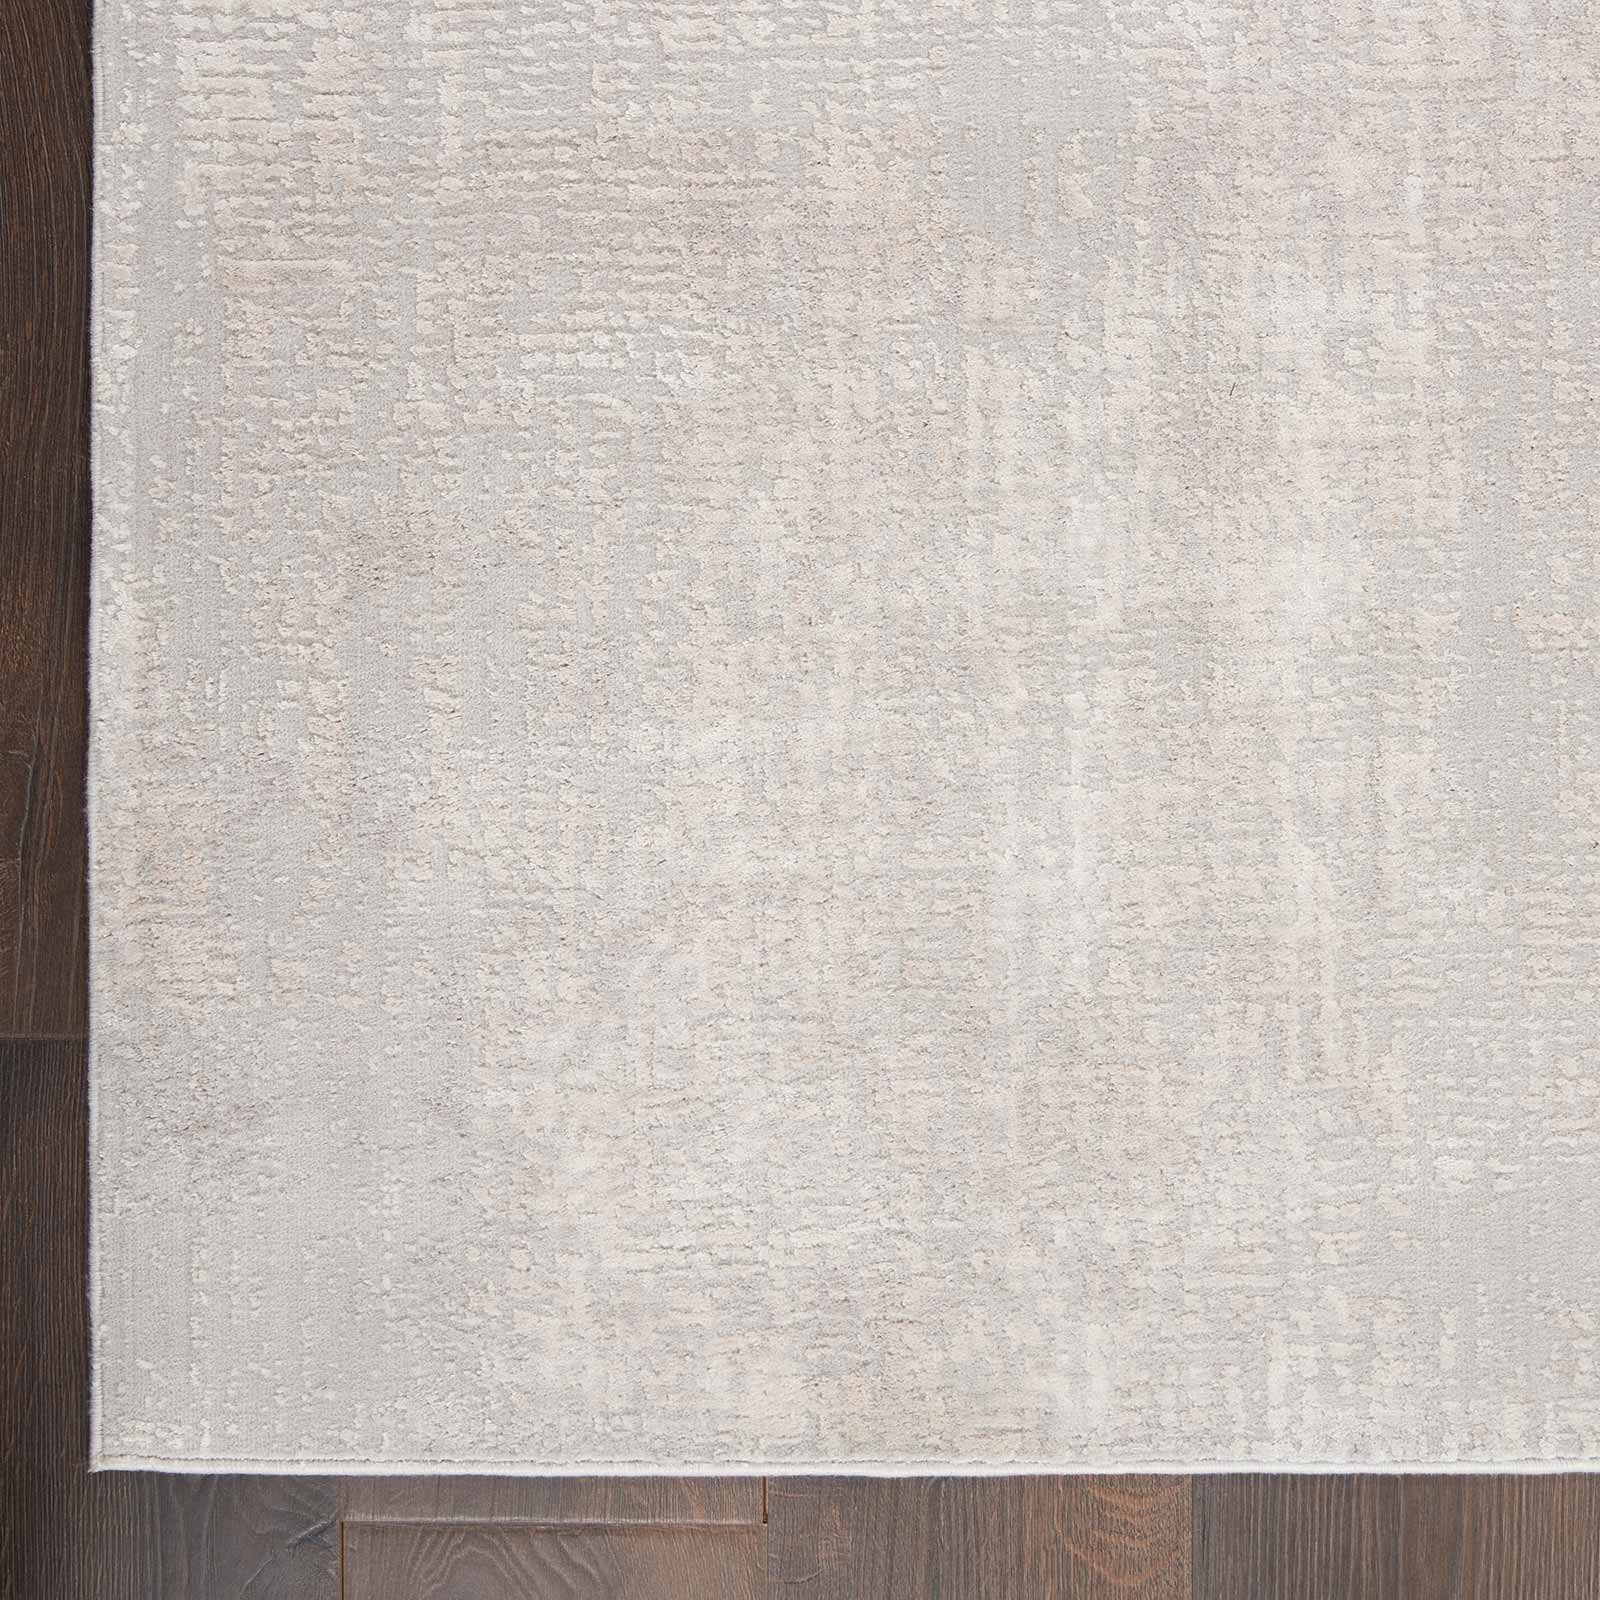 Nourison rug Silky Textures SLY01 IVORY GREY 5x7 099446709837 CR C